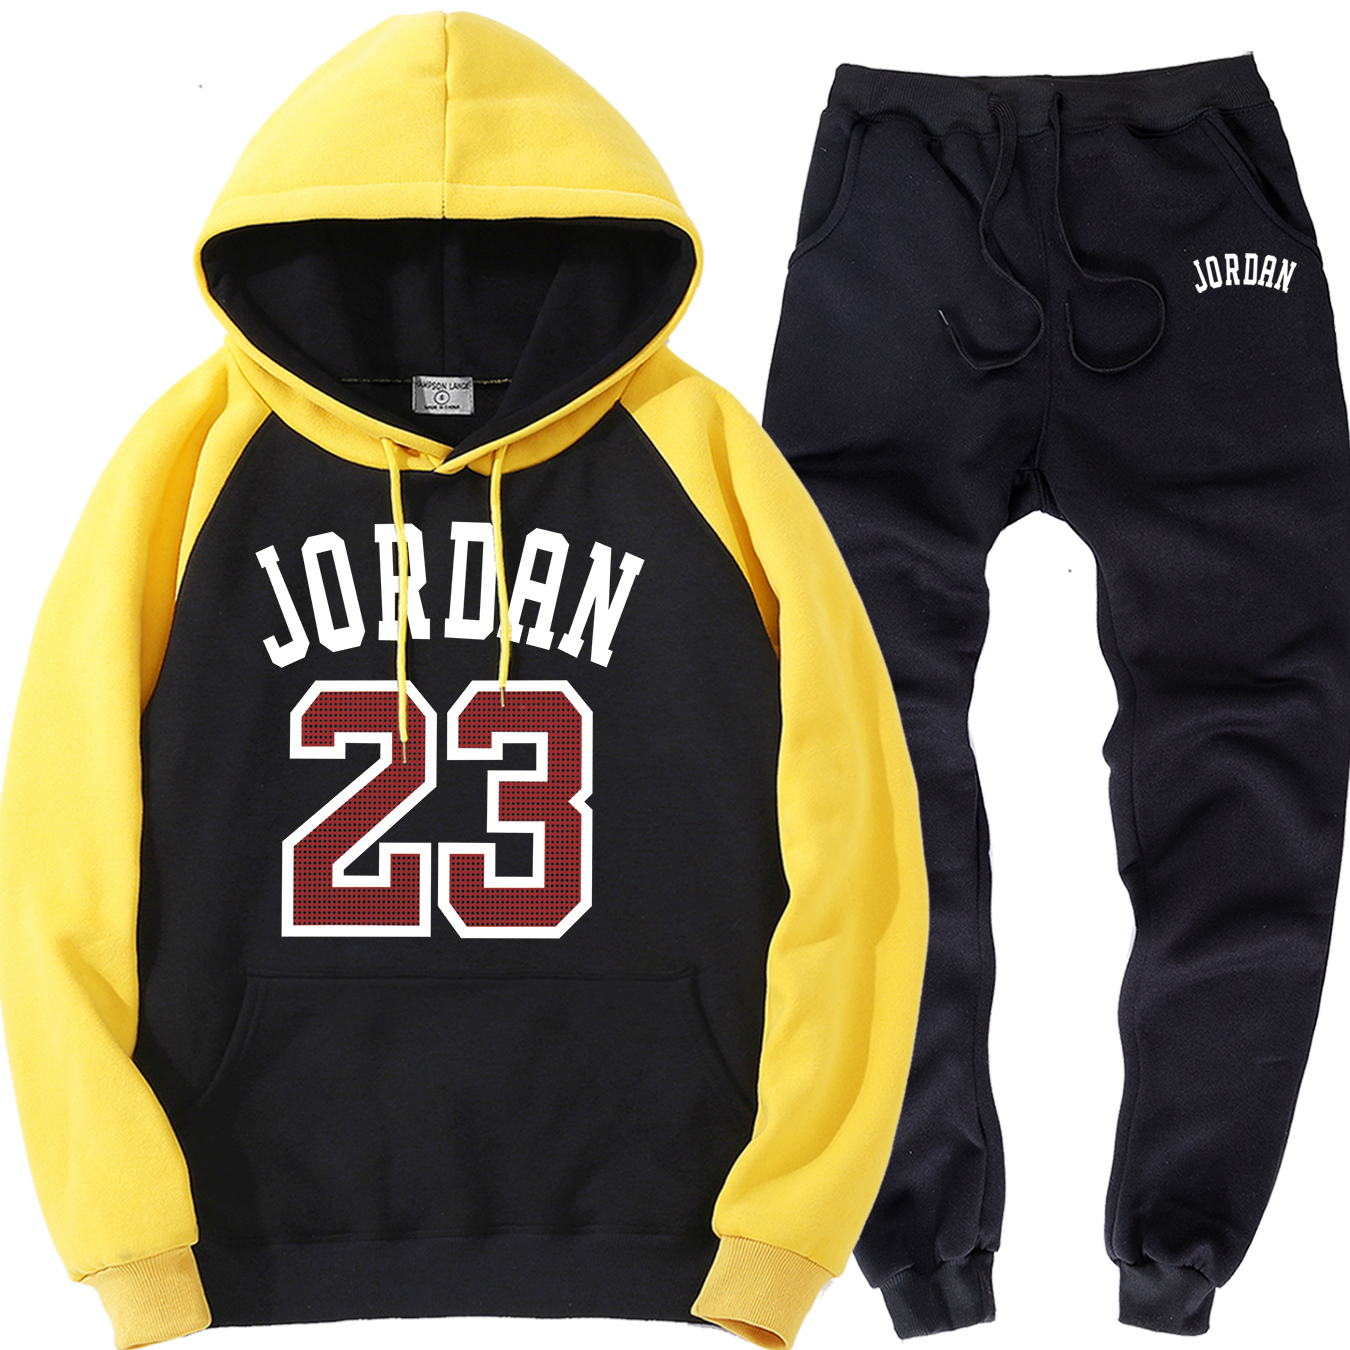 Jordan 23 Male Sports Suits Autumn Winter Warm Clothing Motorcycle Streetwear Mens Sports Sweatshirts+Sweatpants Two Piece Sets